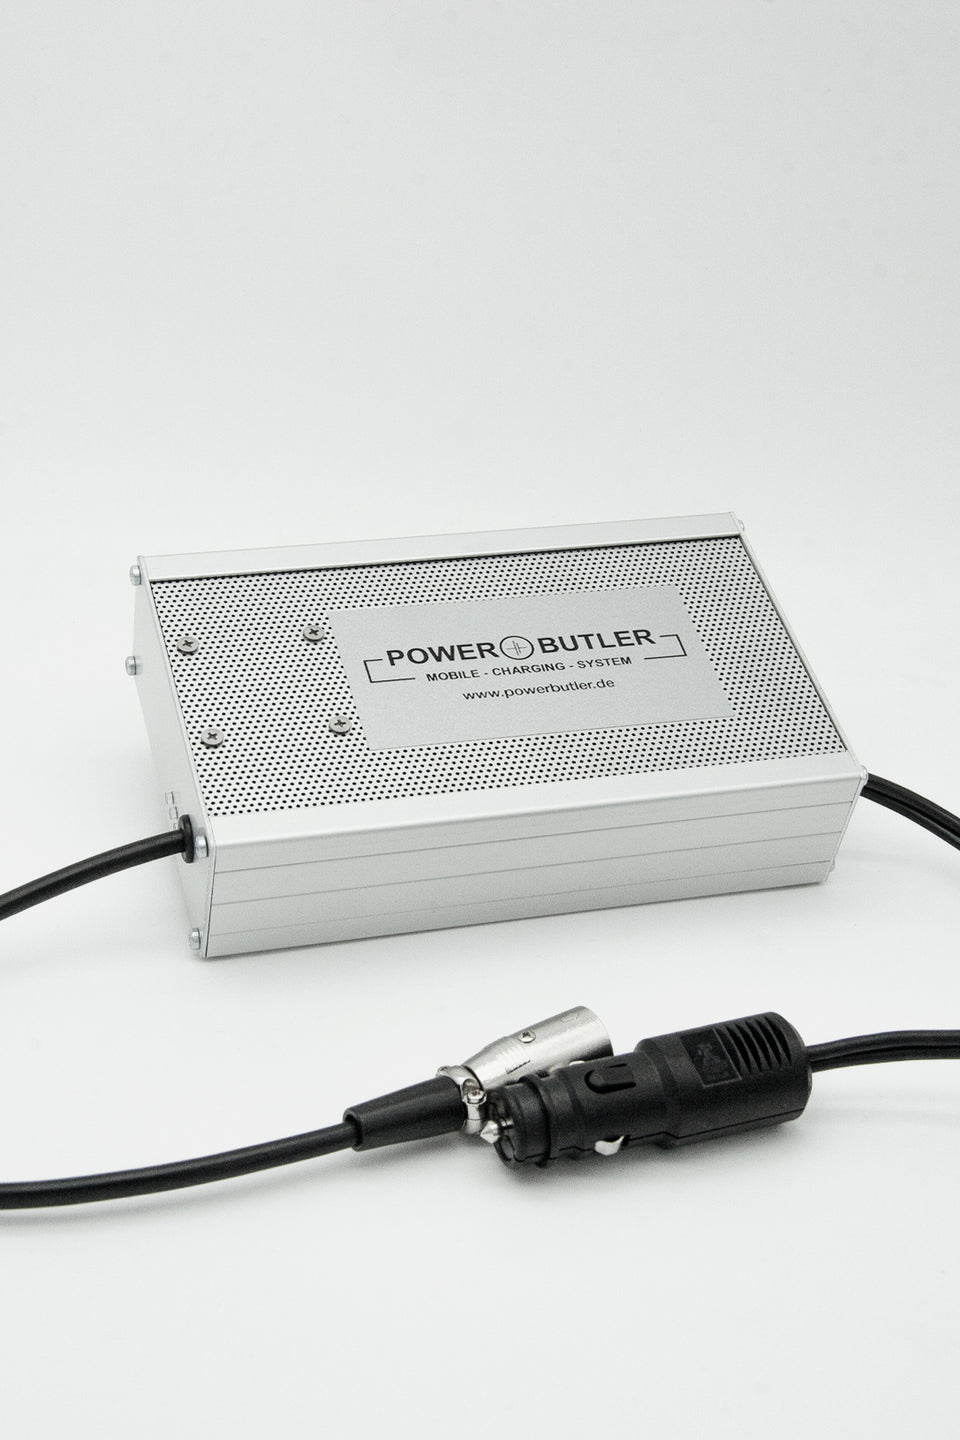 Powerbutler Single for Samsung SDI batteries 36V